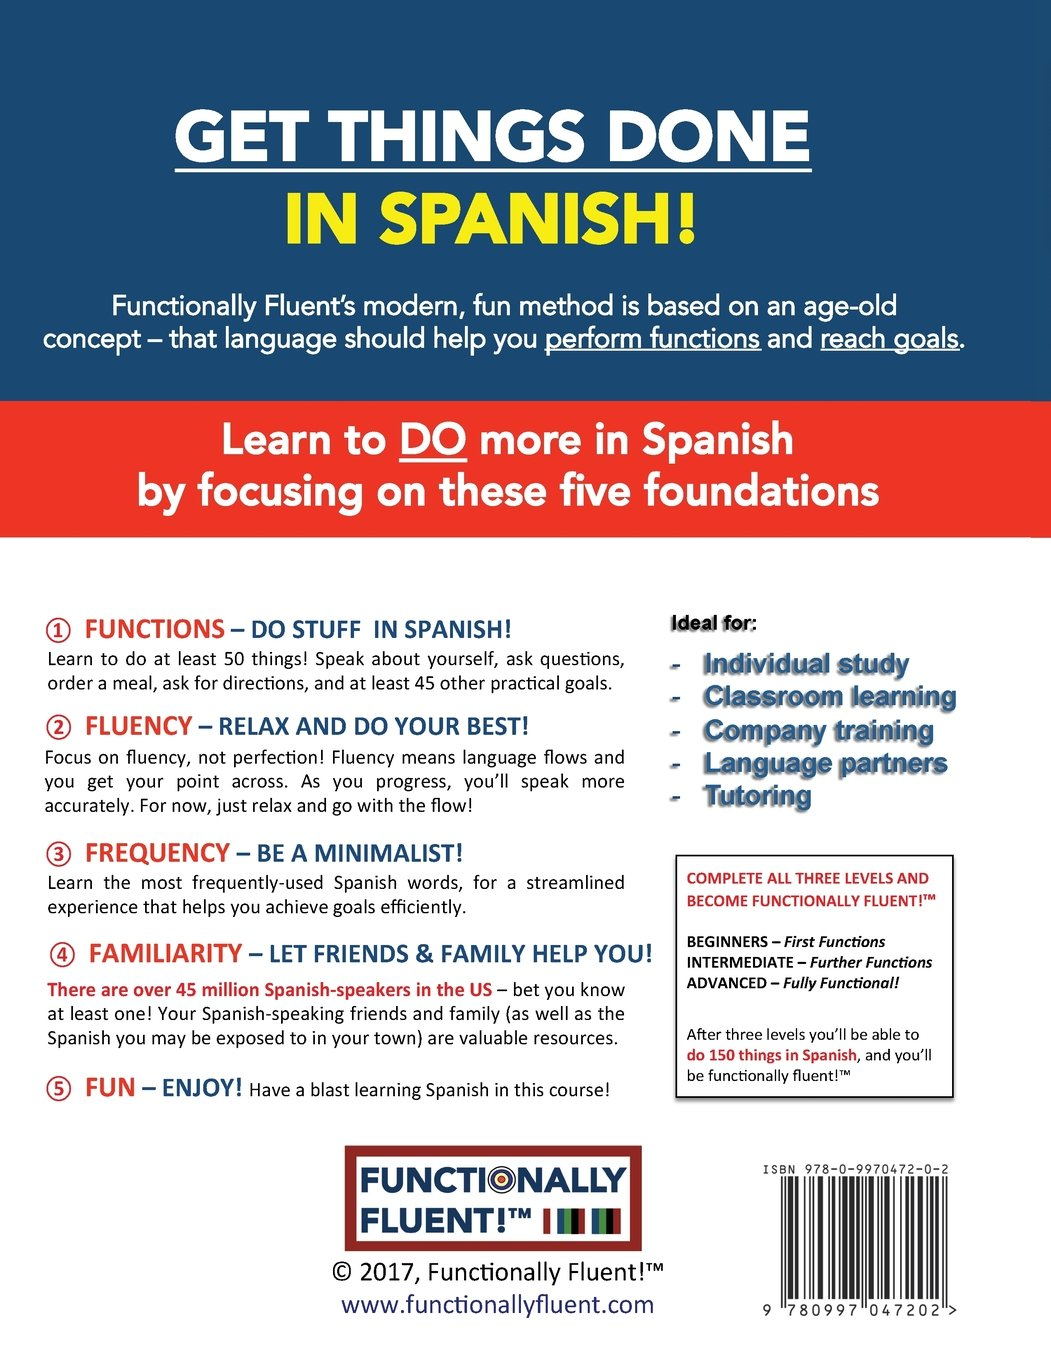 Beginner Spanish Course, including full-color Spanish coursebook and audio  downloads: Learn to DO things in Spanish, fast and .